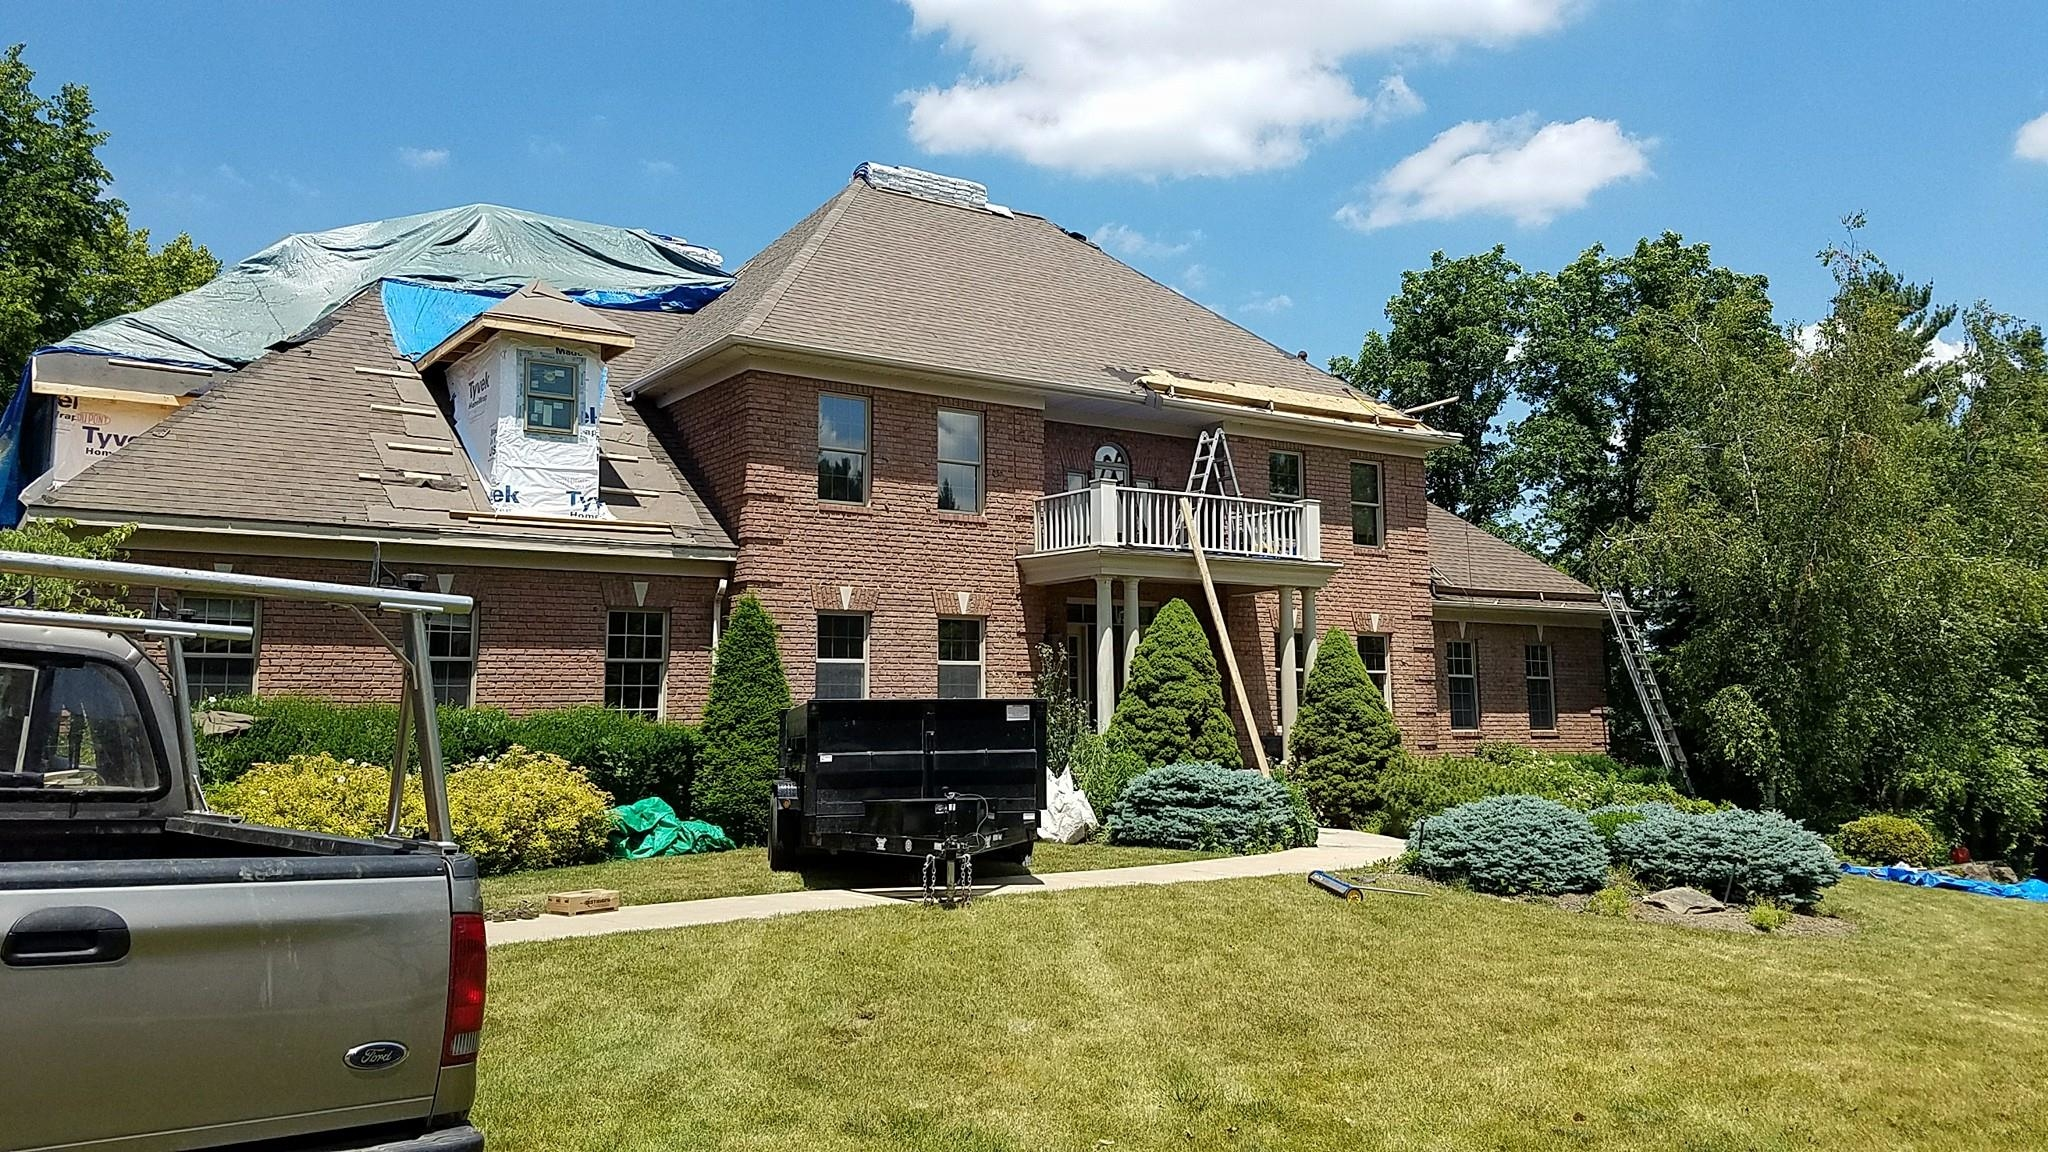 H & M Roofing And Exteriors LLC image 0